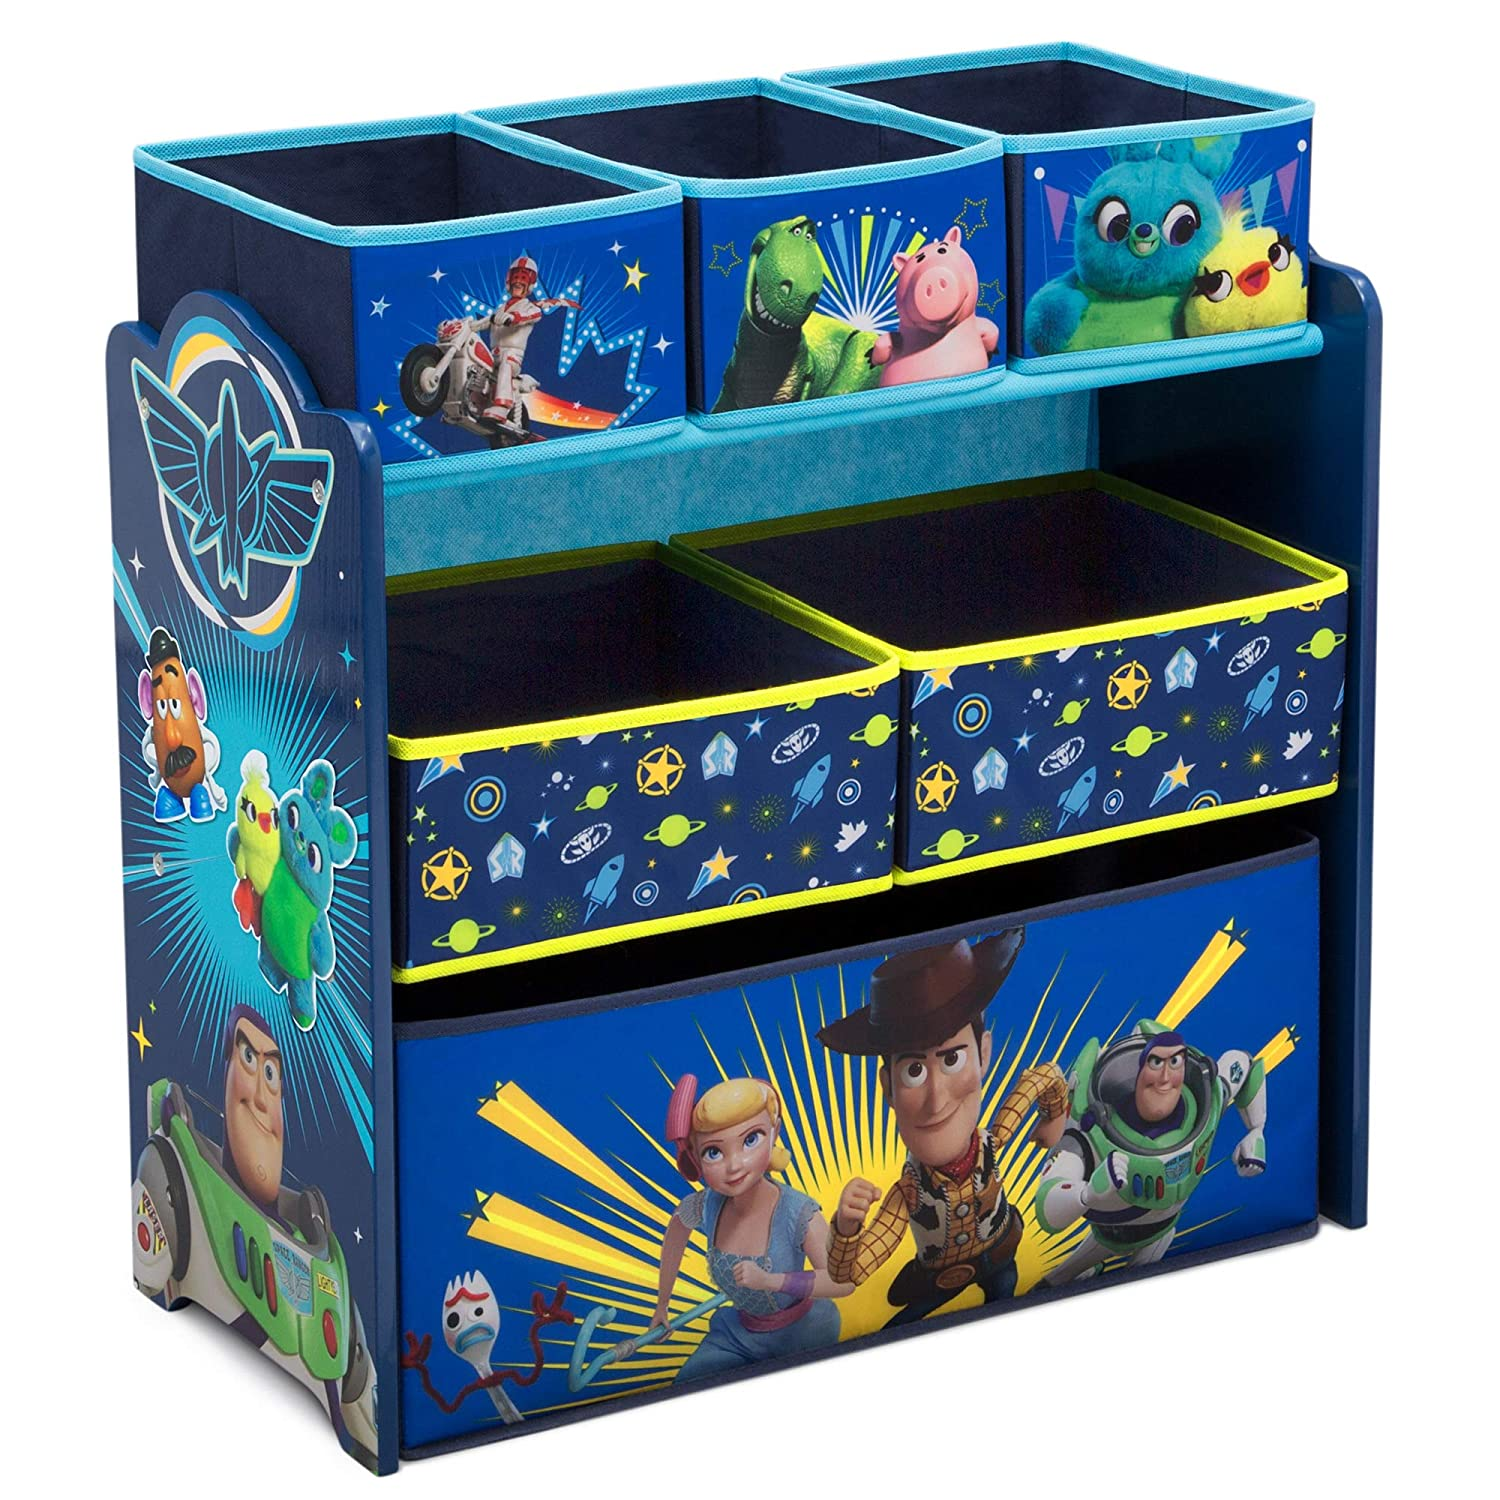 Top 9 Best Toy Storage Organizer (2020 Reviews & Guide) 6